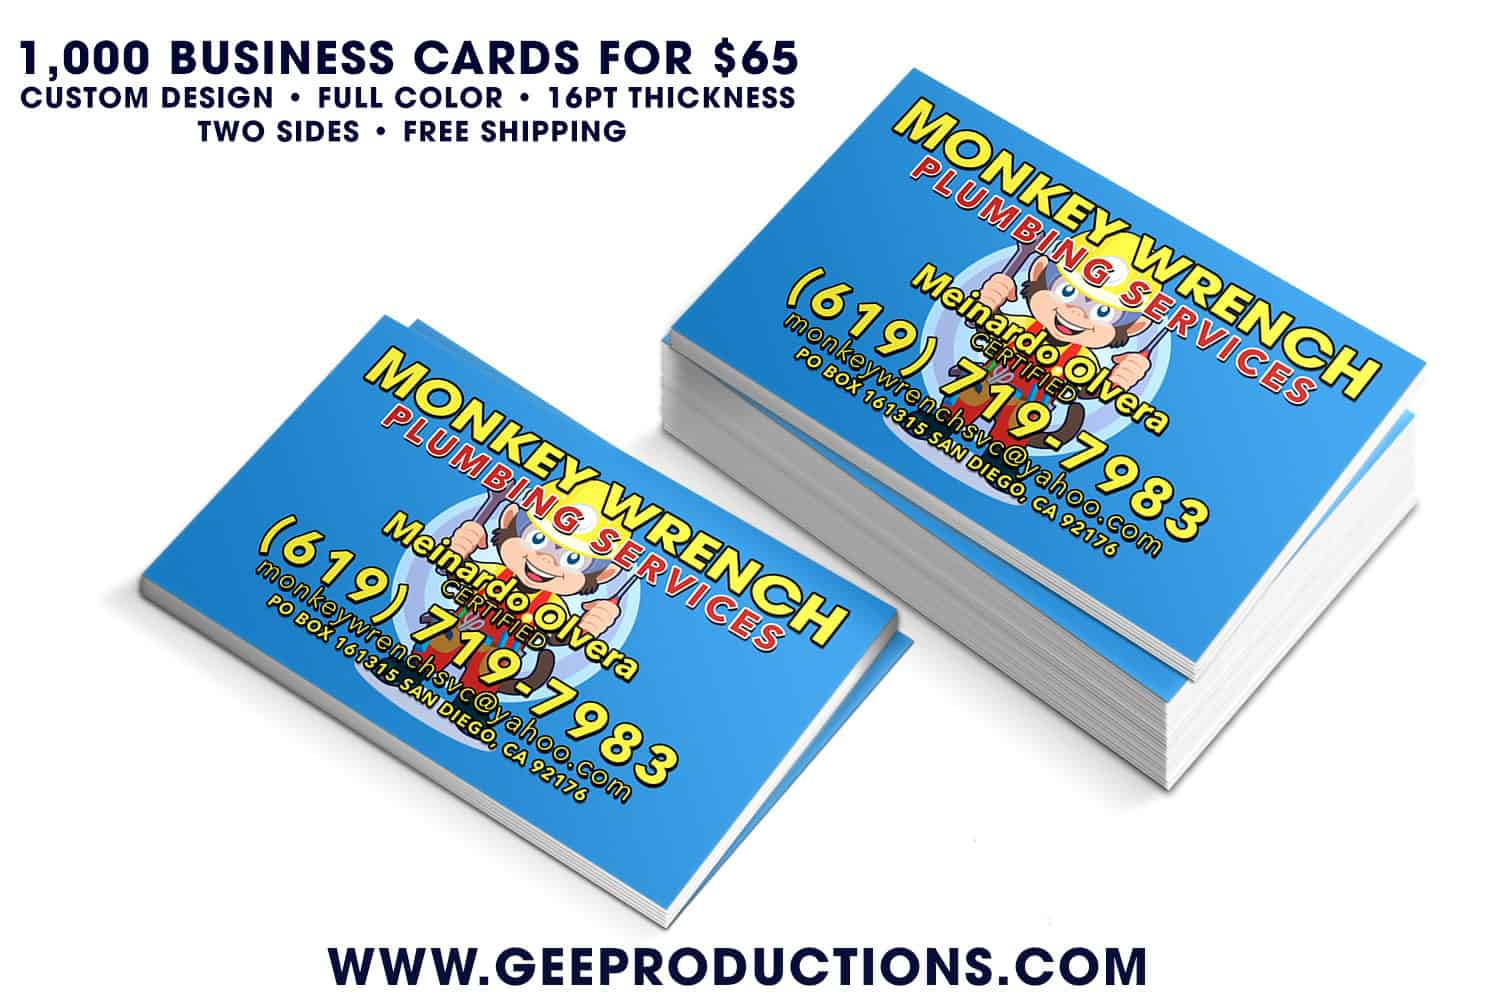 Monkey wrench plumbing services business cards monkey wrench plumbing services business cards reheart Image collections